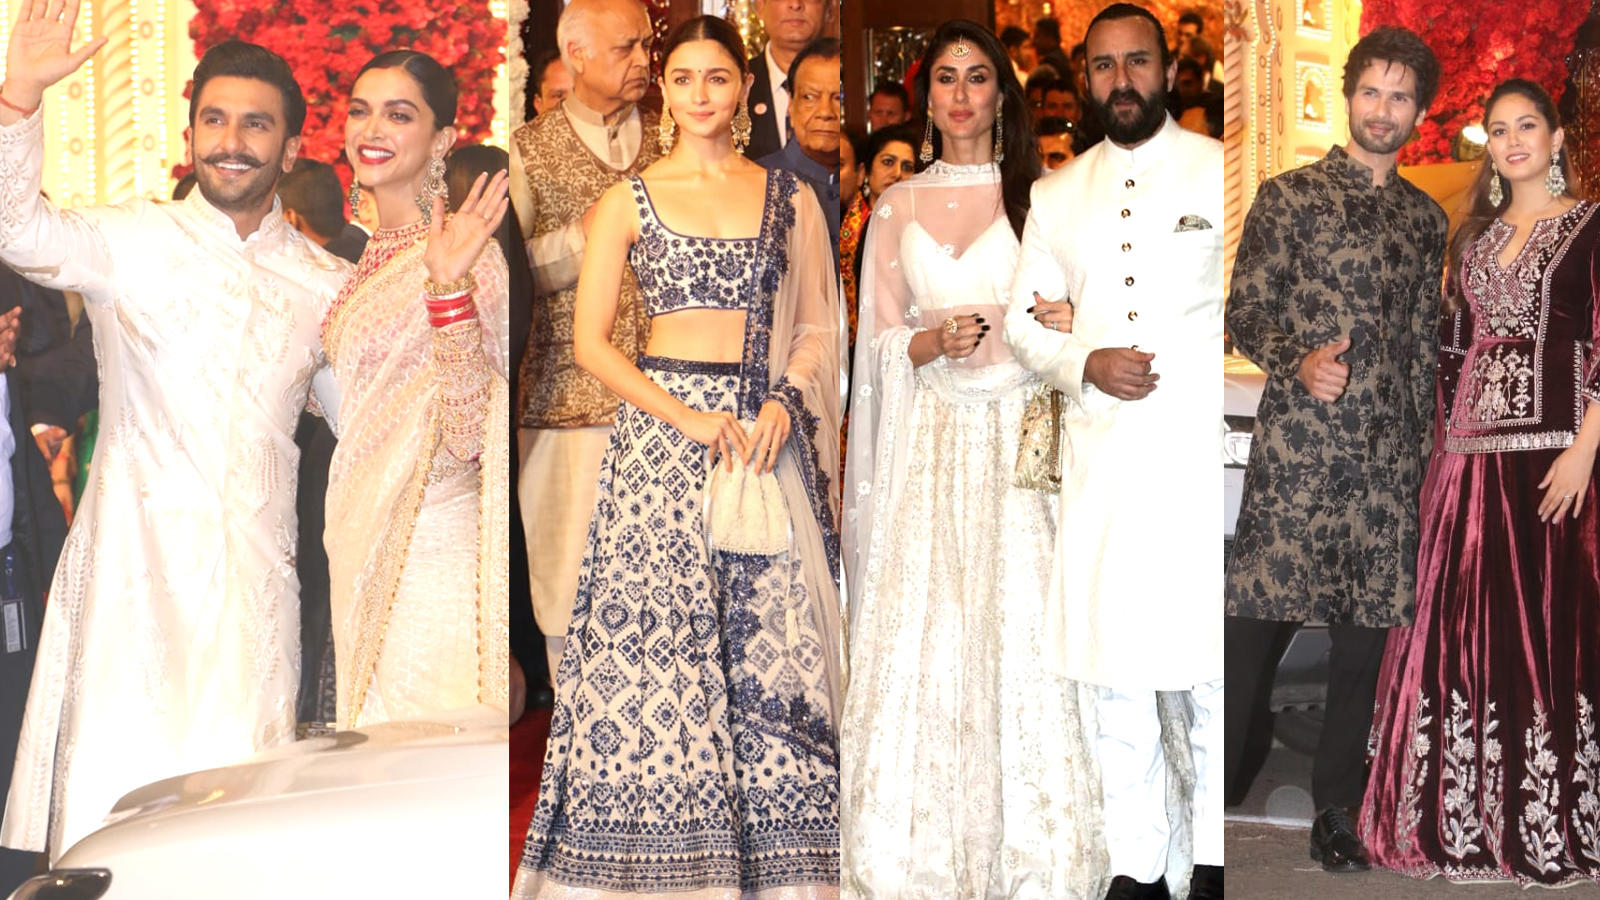 Celebrities across Globe attended Isha-Anand Royal Wedding